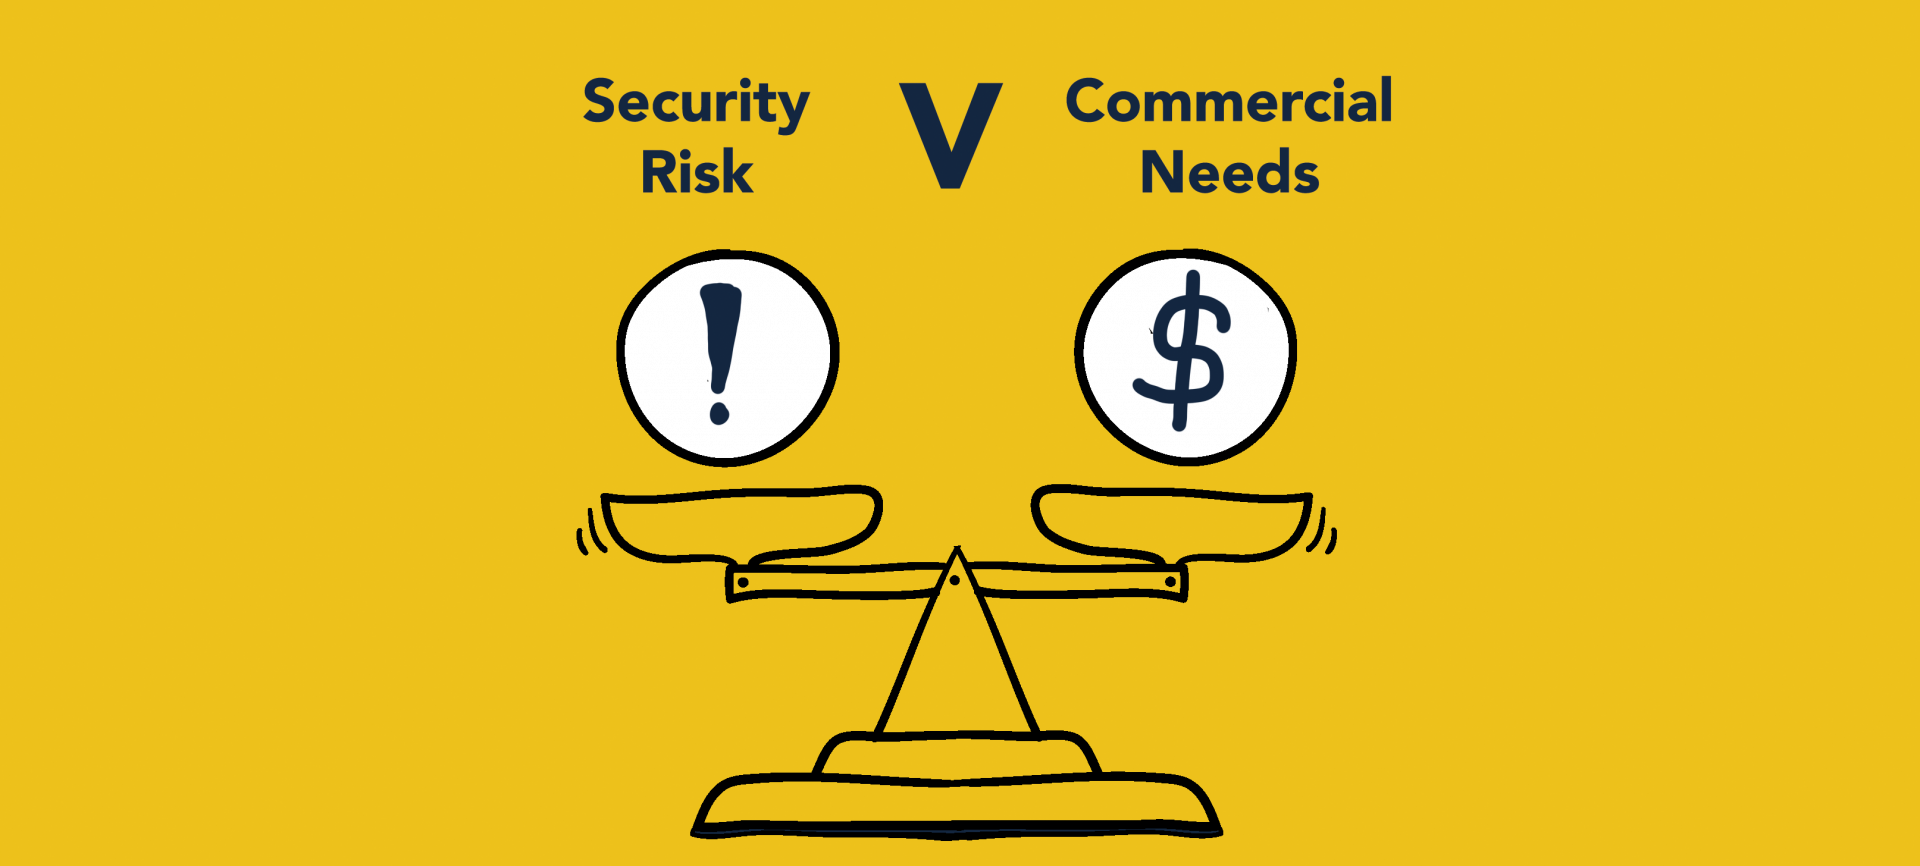 Security risk versus commercial needs balanced against one another on a scale